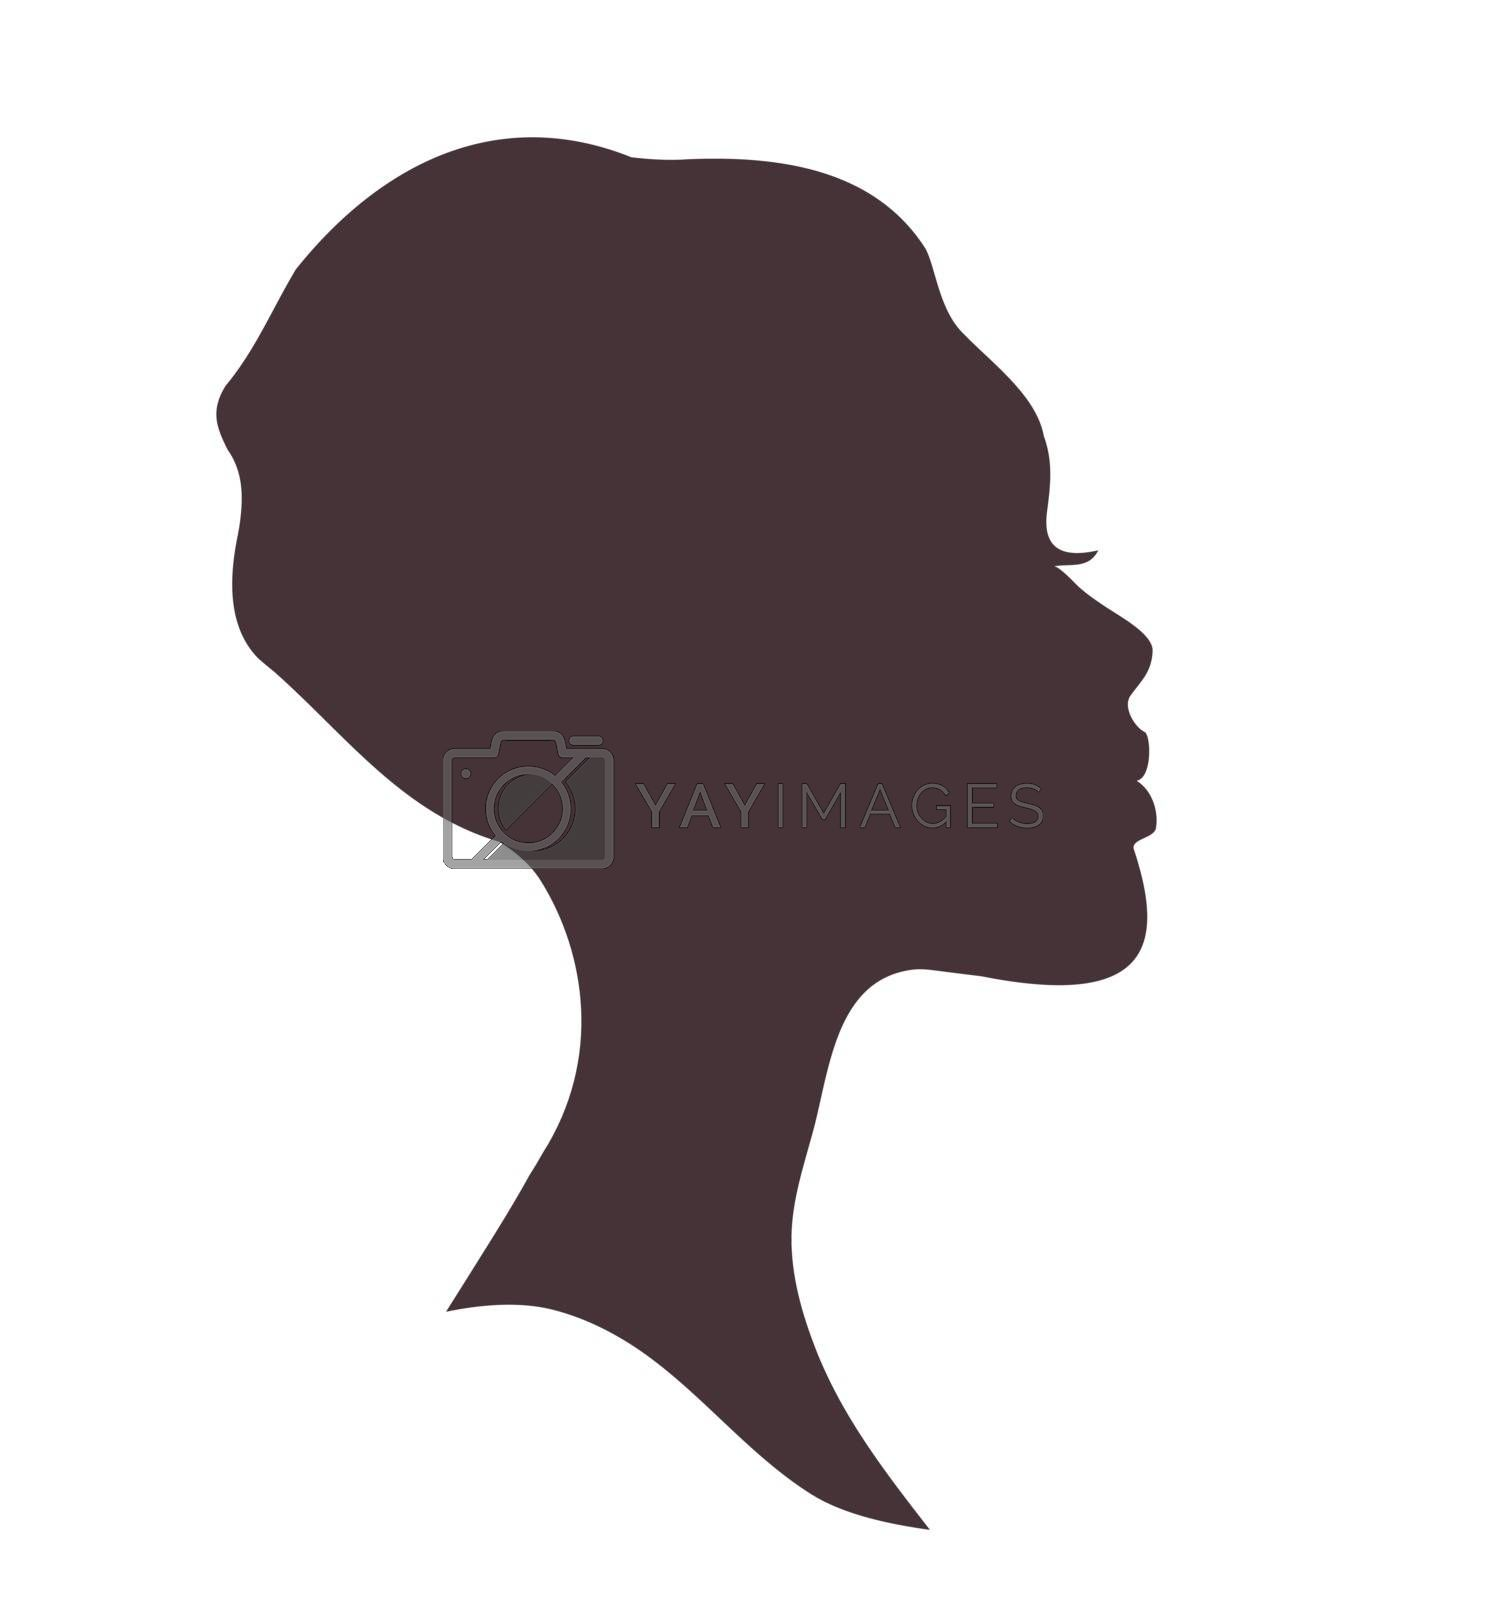 Young woman head silhouette with stylish african national headdress.